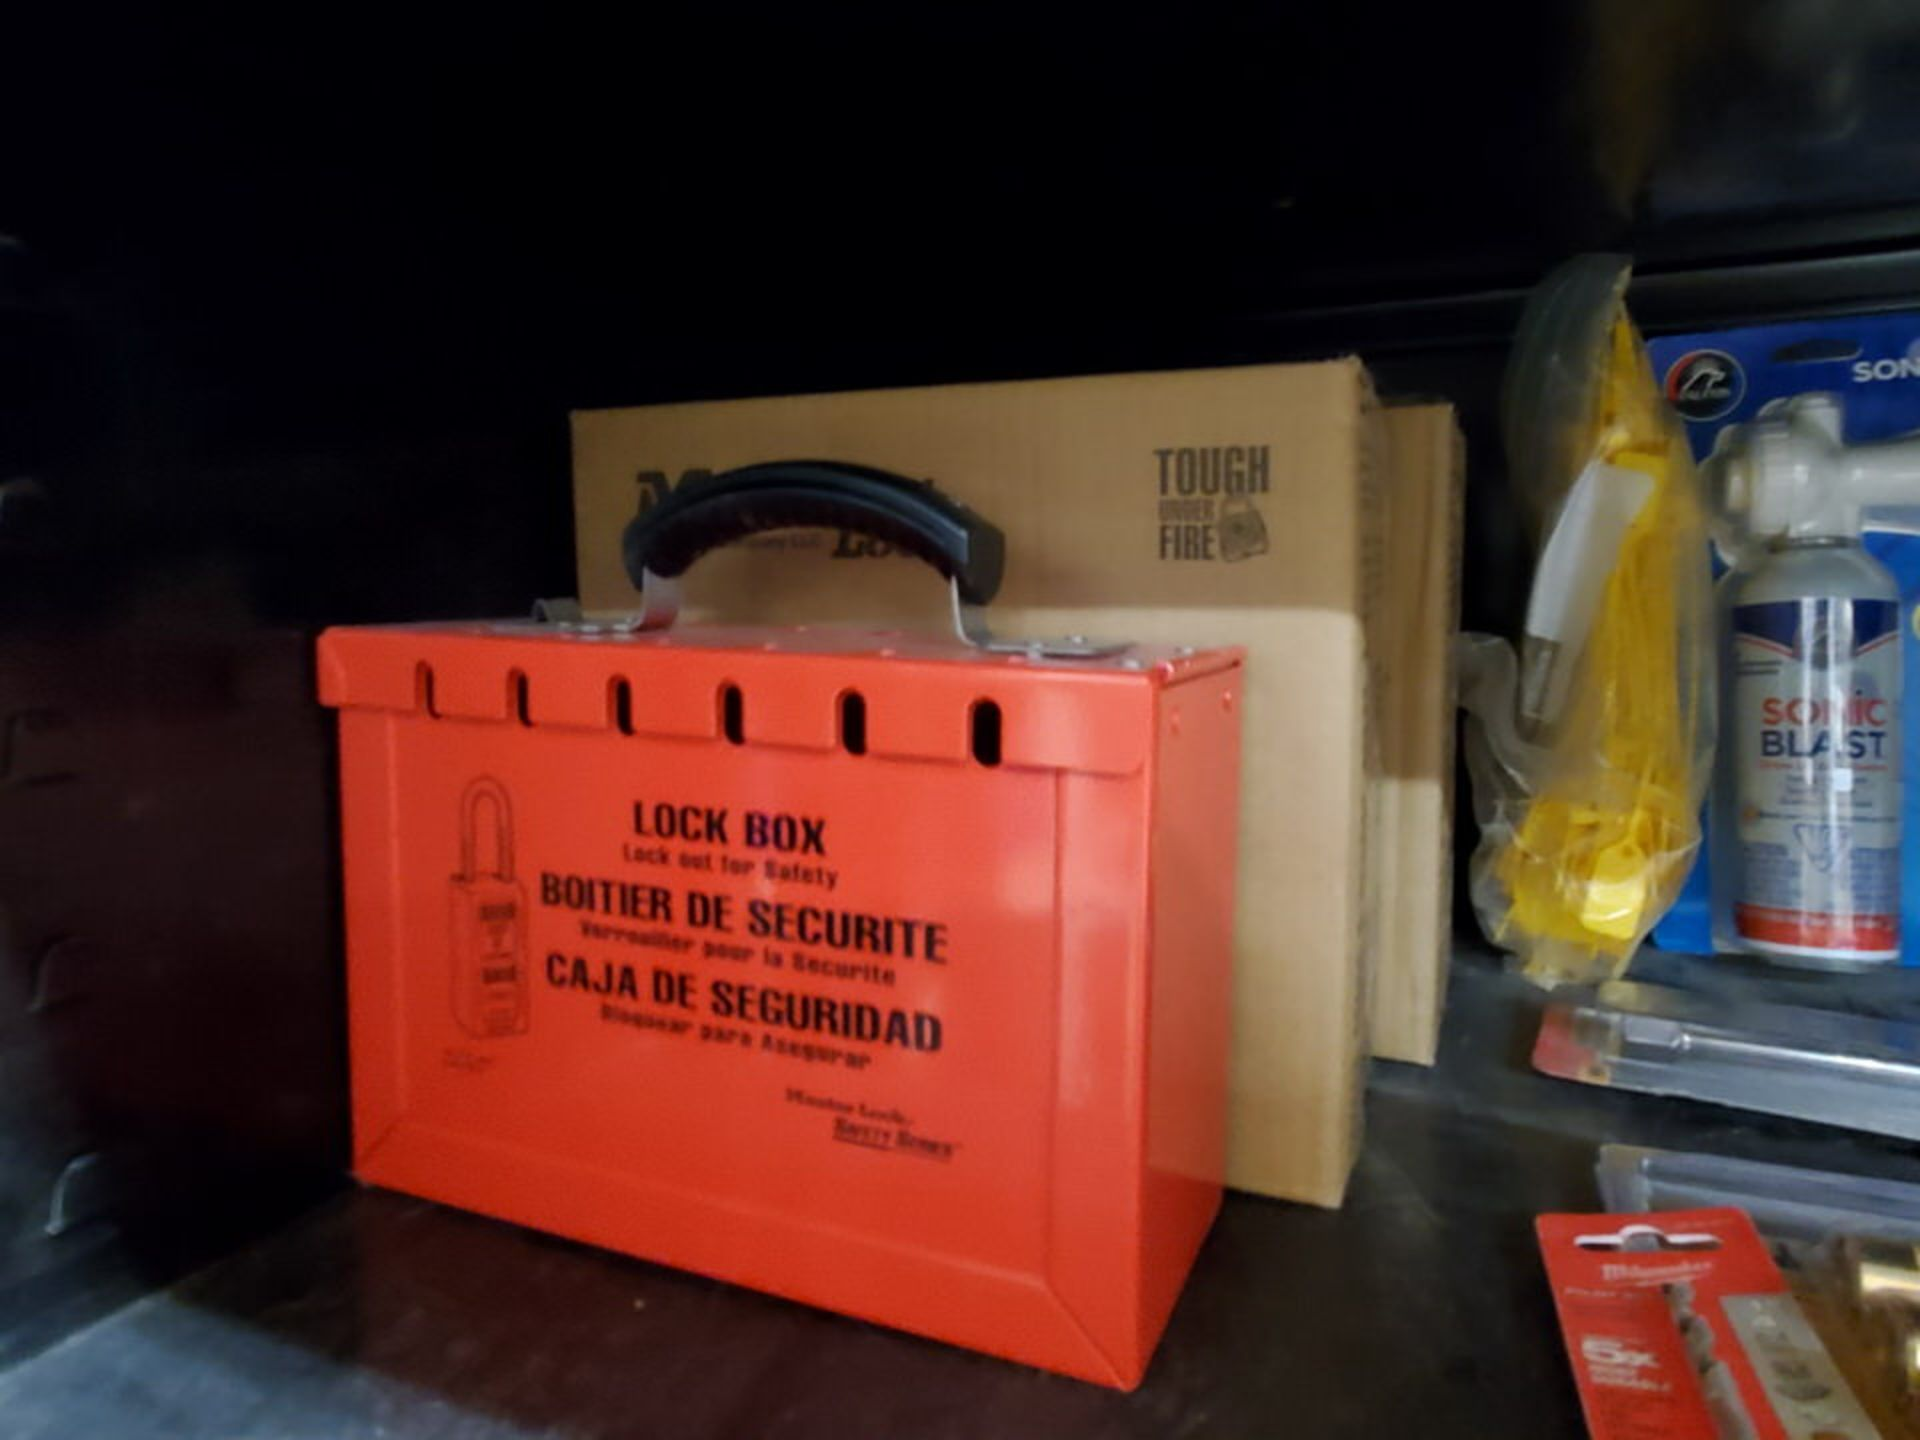 Metal Storage Locker To Include But Not Limited To: First Aid Refill Kits, Assorted Fittings, - Image 8 of 13